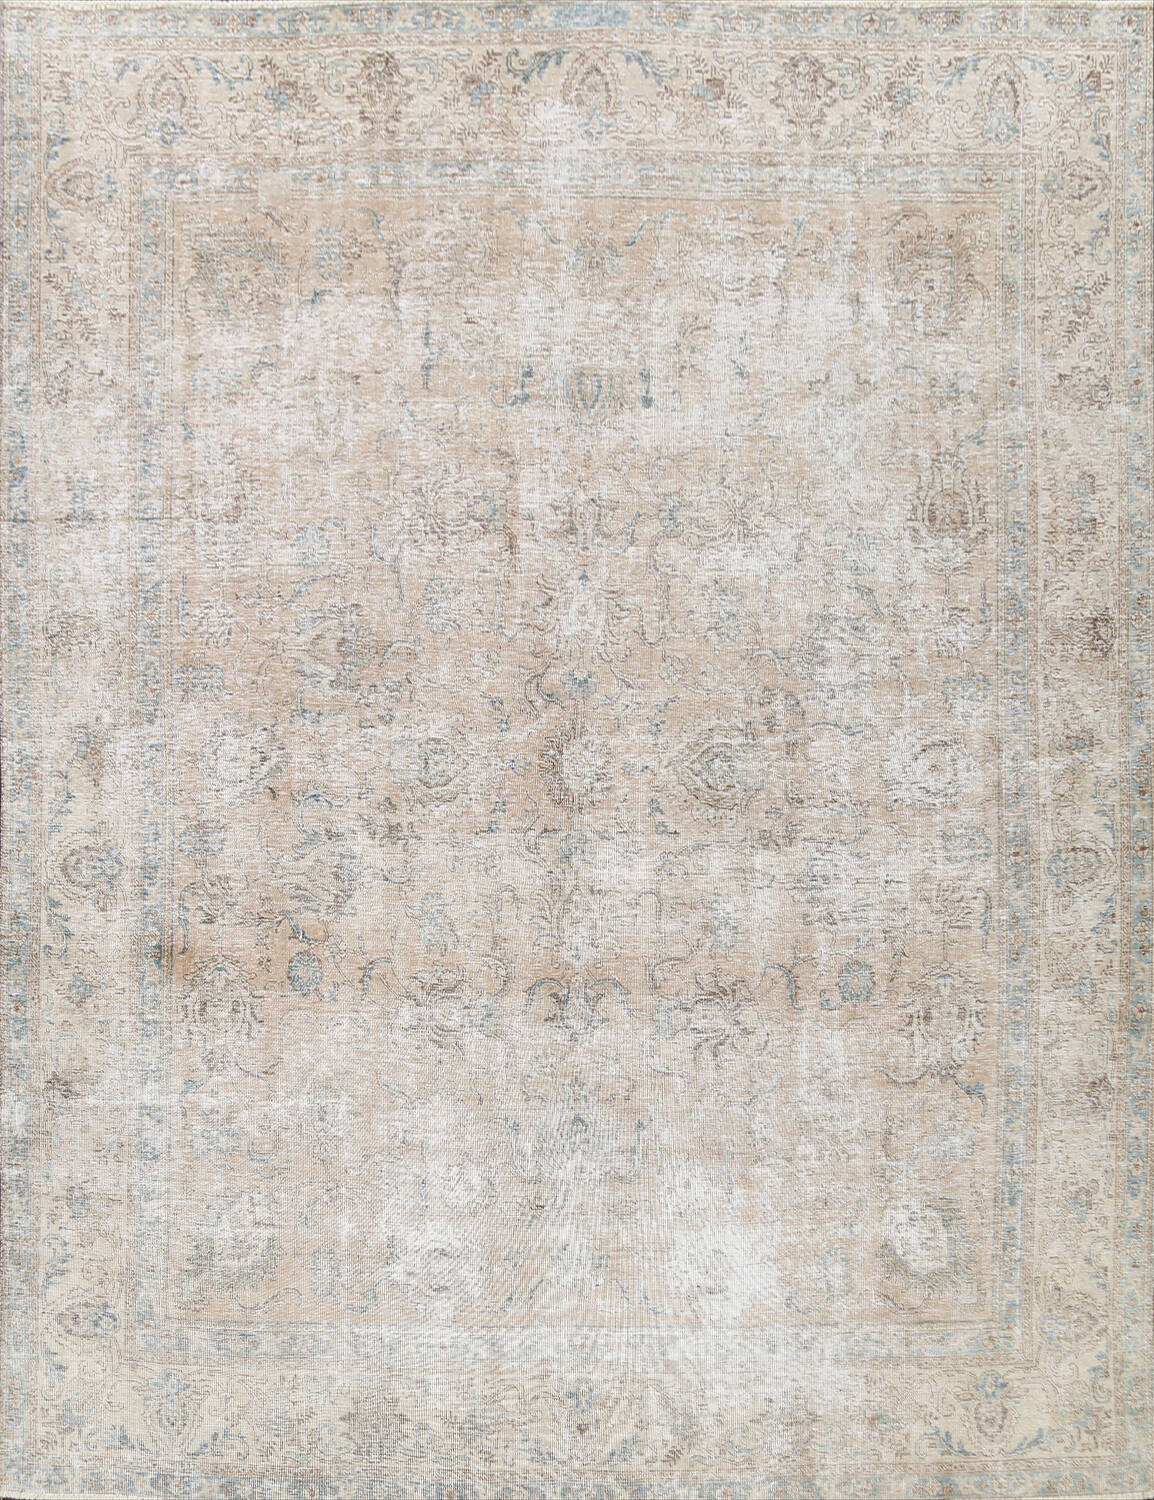 Muted Floral Tabriz Persian Area Rug 10x11 image 1